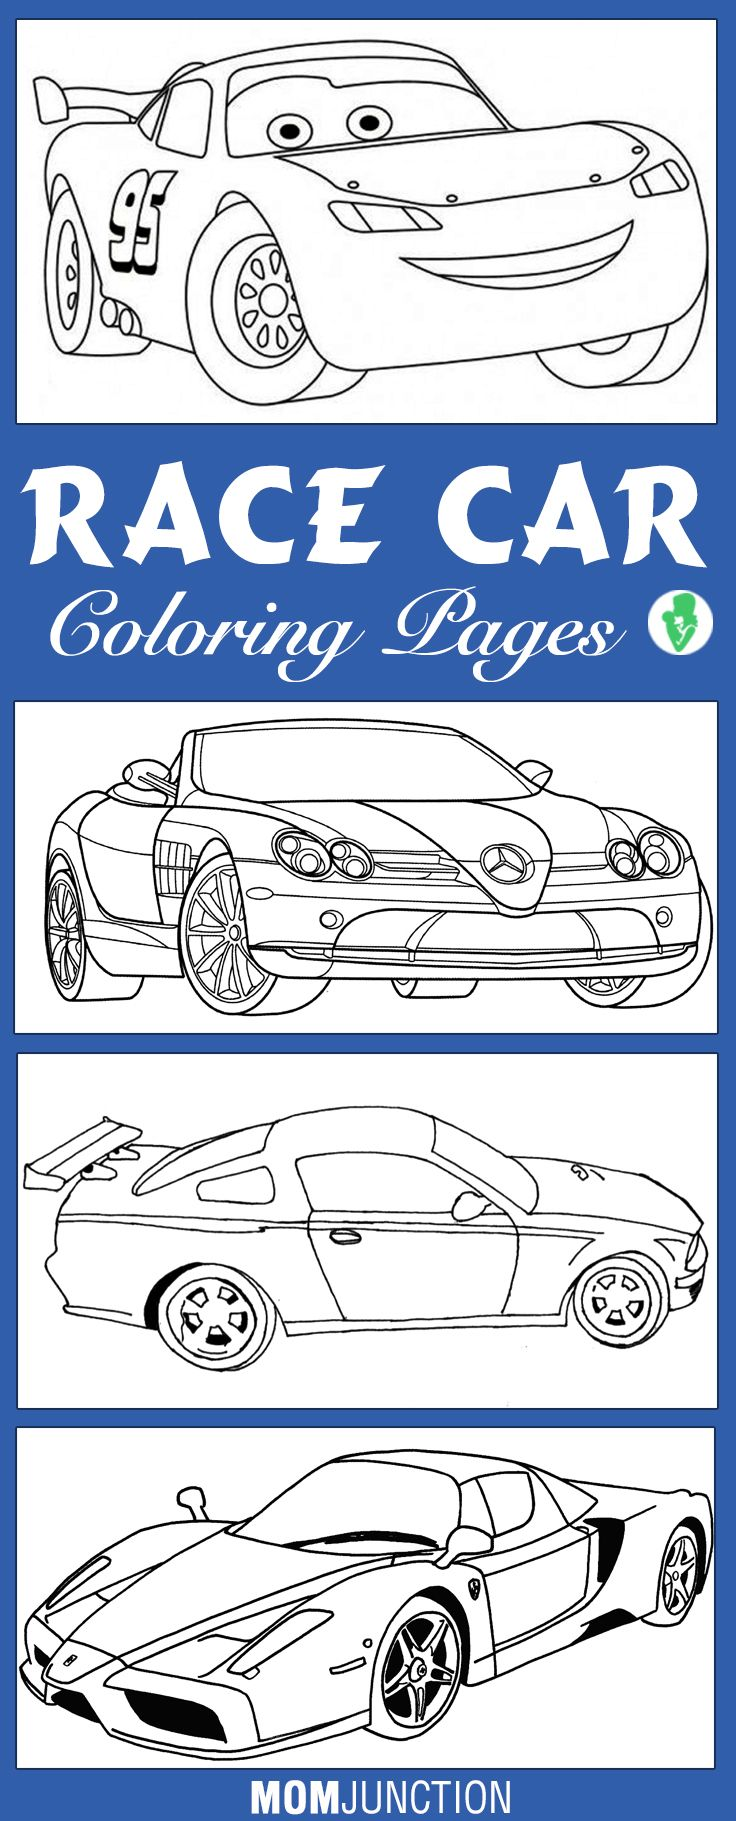 Top 25 Race Car Coloring Pages For Your Little Ones | Angelitas ...